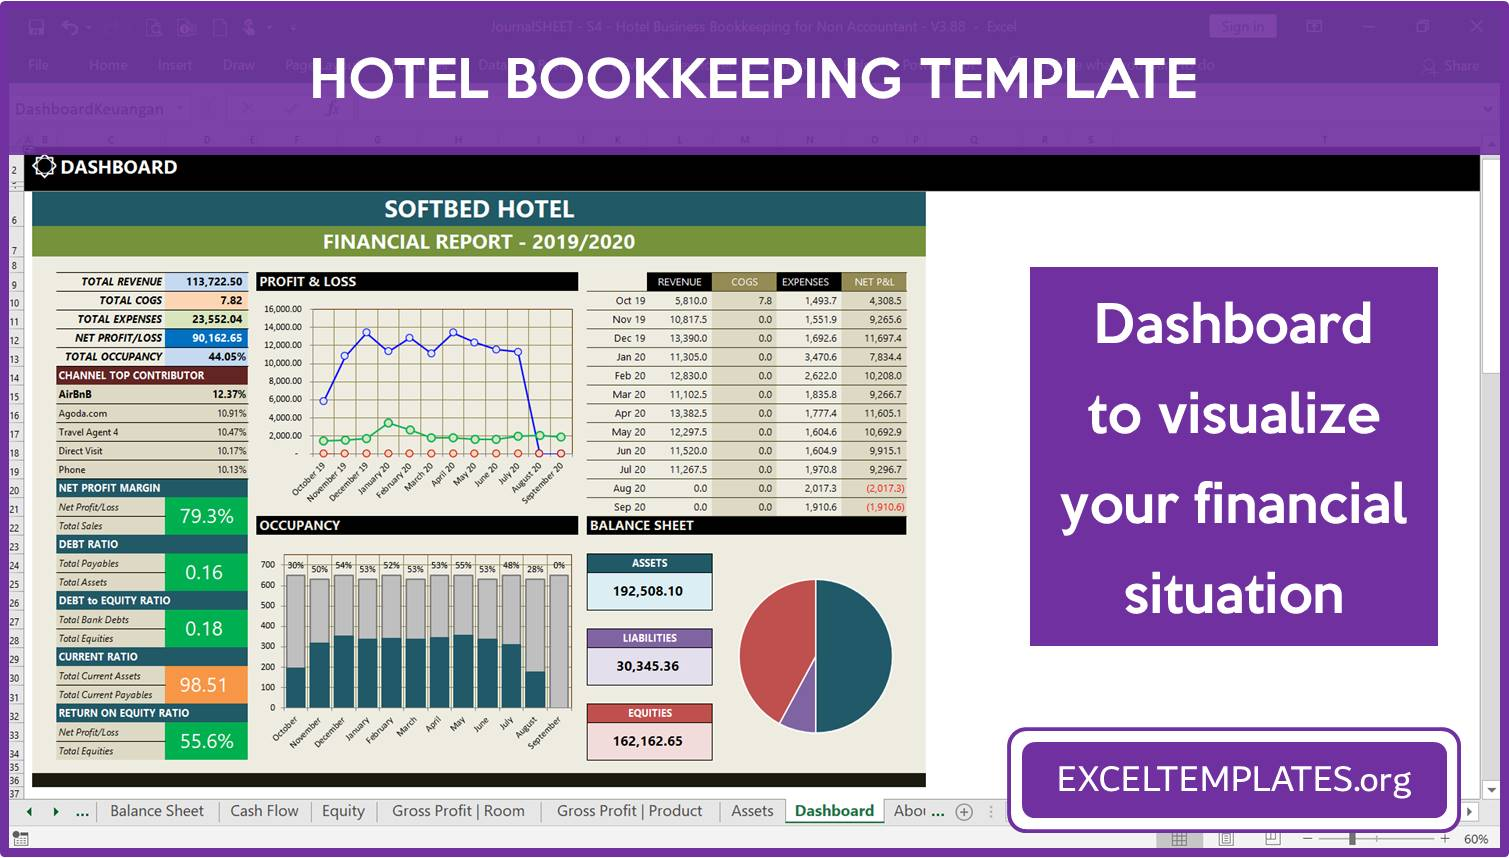 Hotel Bookkeeping Template - Dashboard